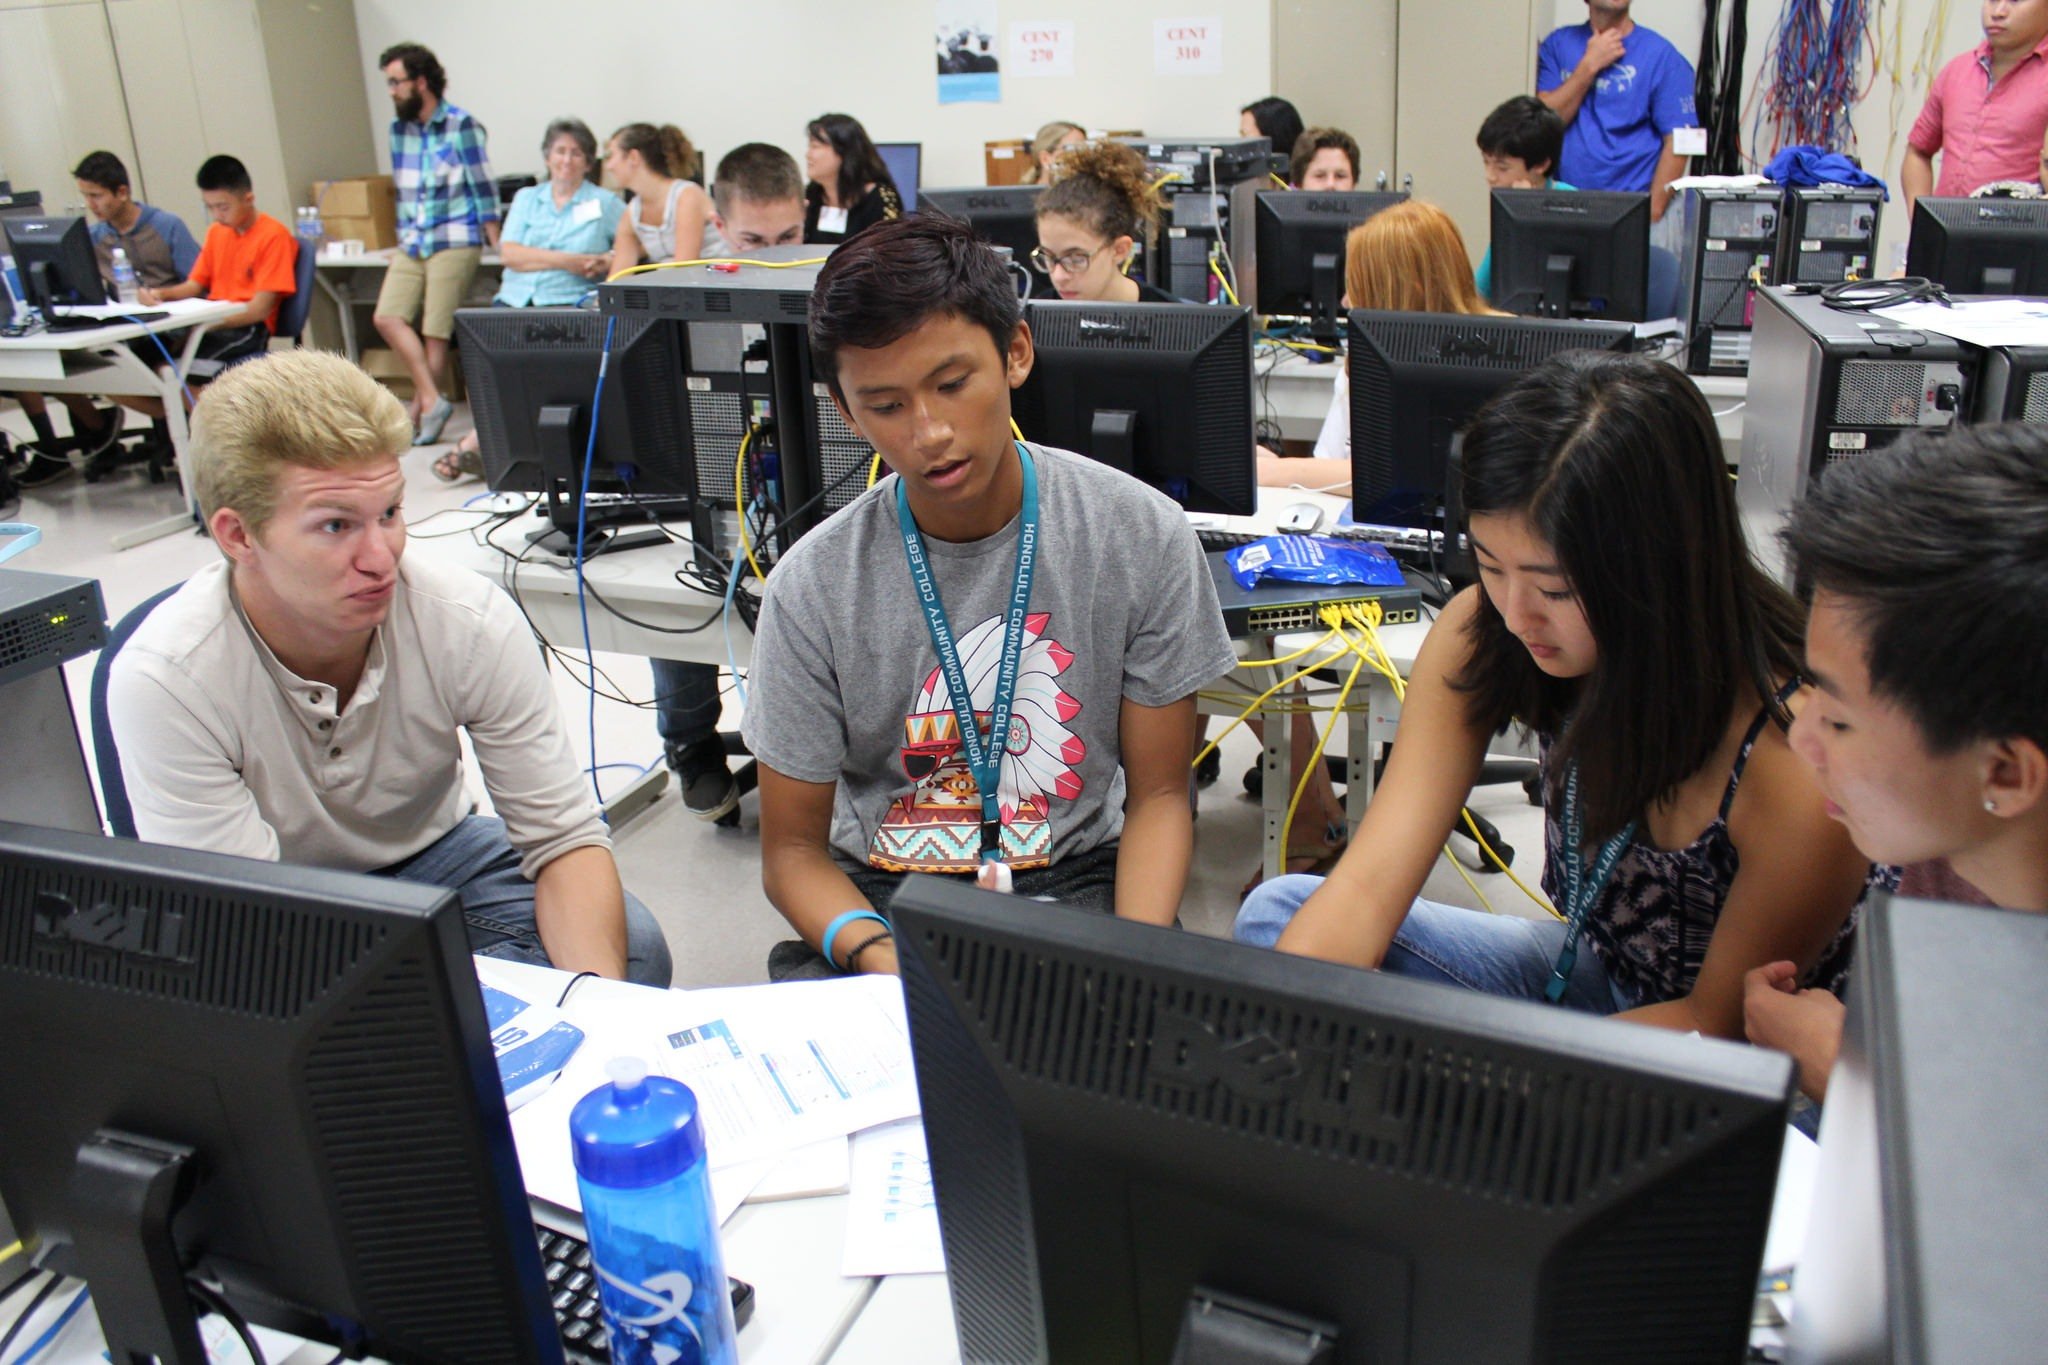 High school students participate in an NSA GenCyber Camp in Hawaii. The agency has done more to get K-12 and college students involved in cybersecurity. (Courtesy NSA)